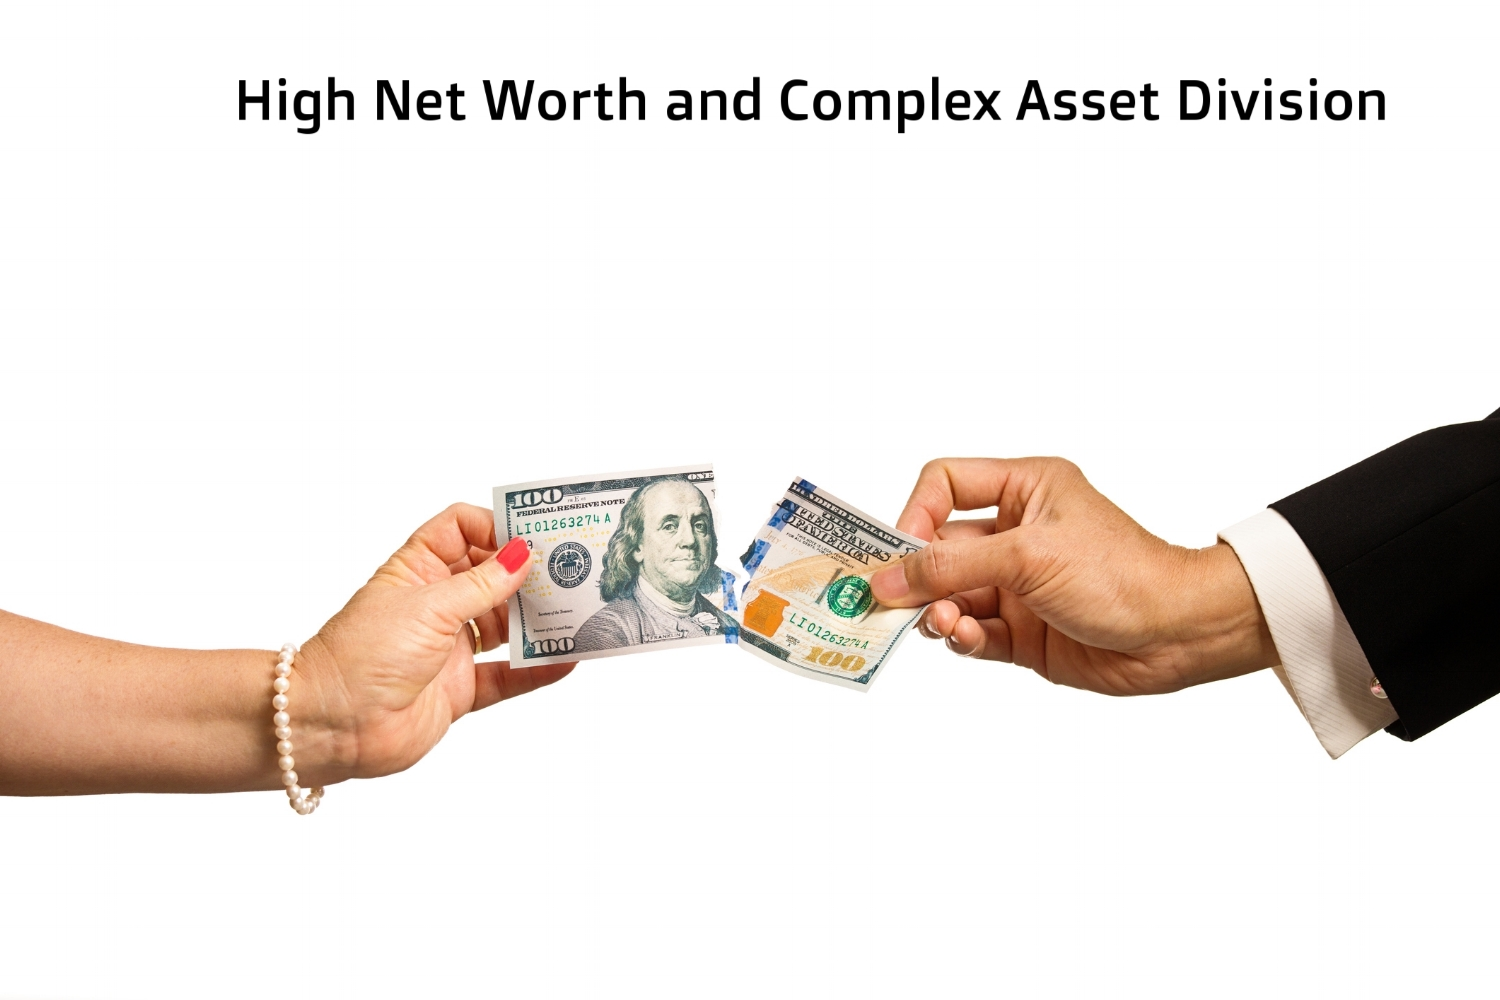 High Net Worth and Complex Asset Division